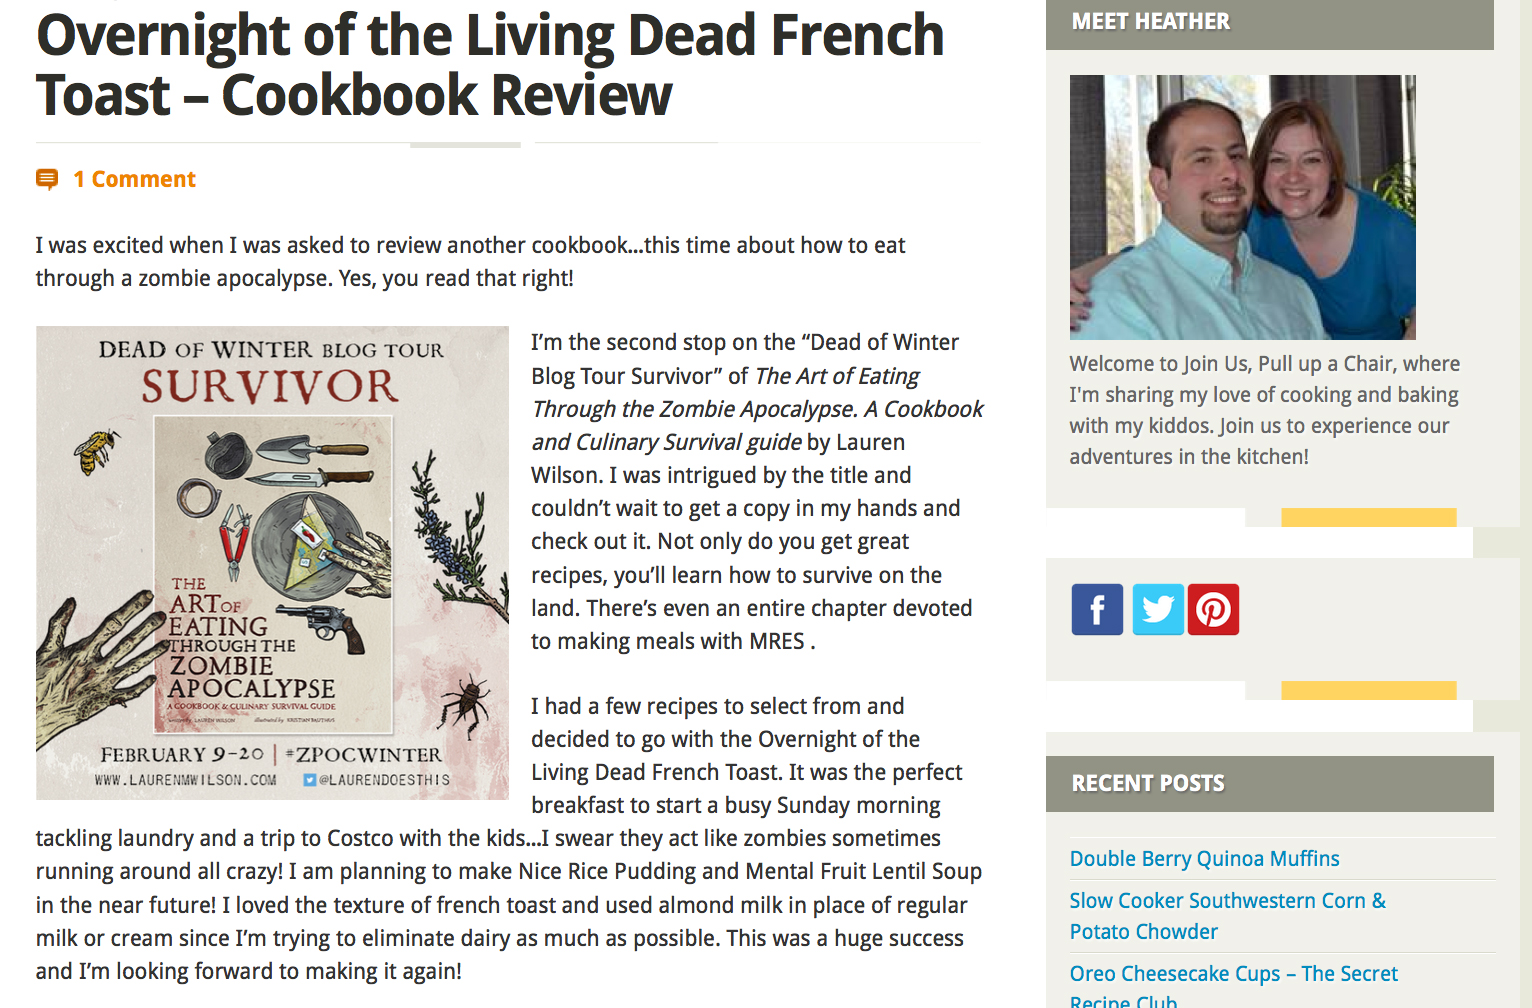 Review of The Art of Eating Through the Zombie Apocalypse on Join Us Pull Up A Chair.